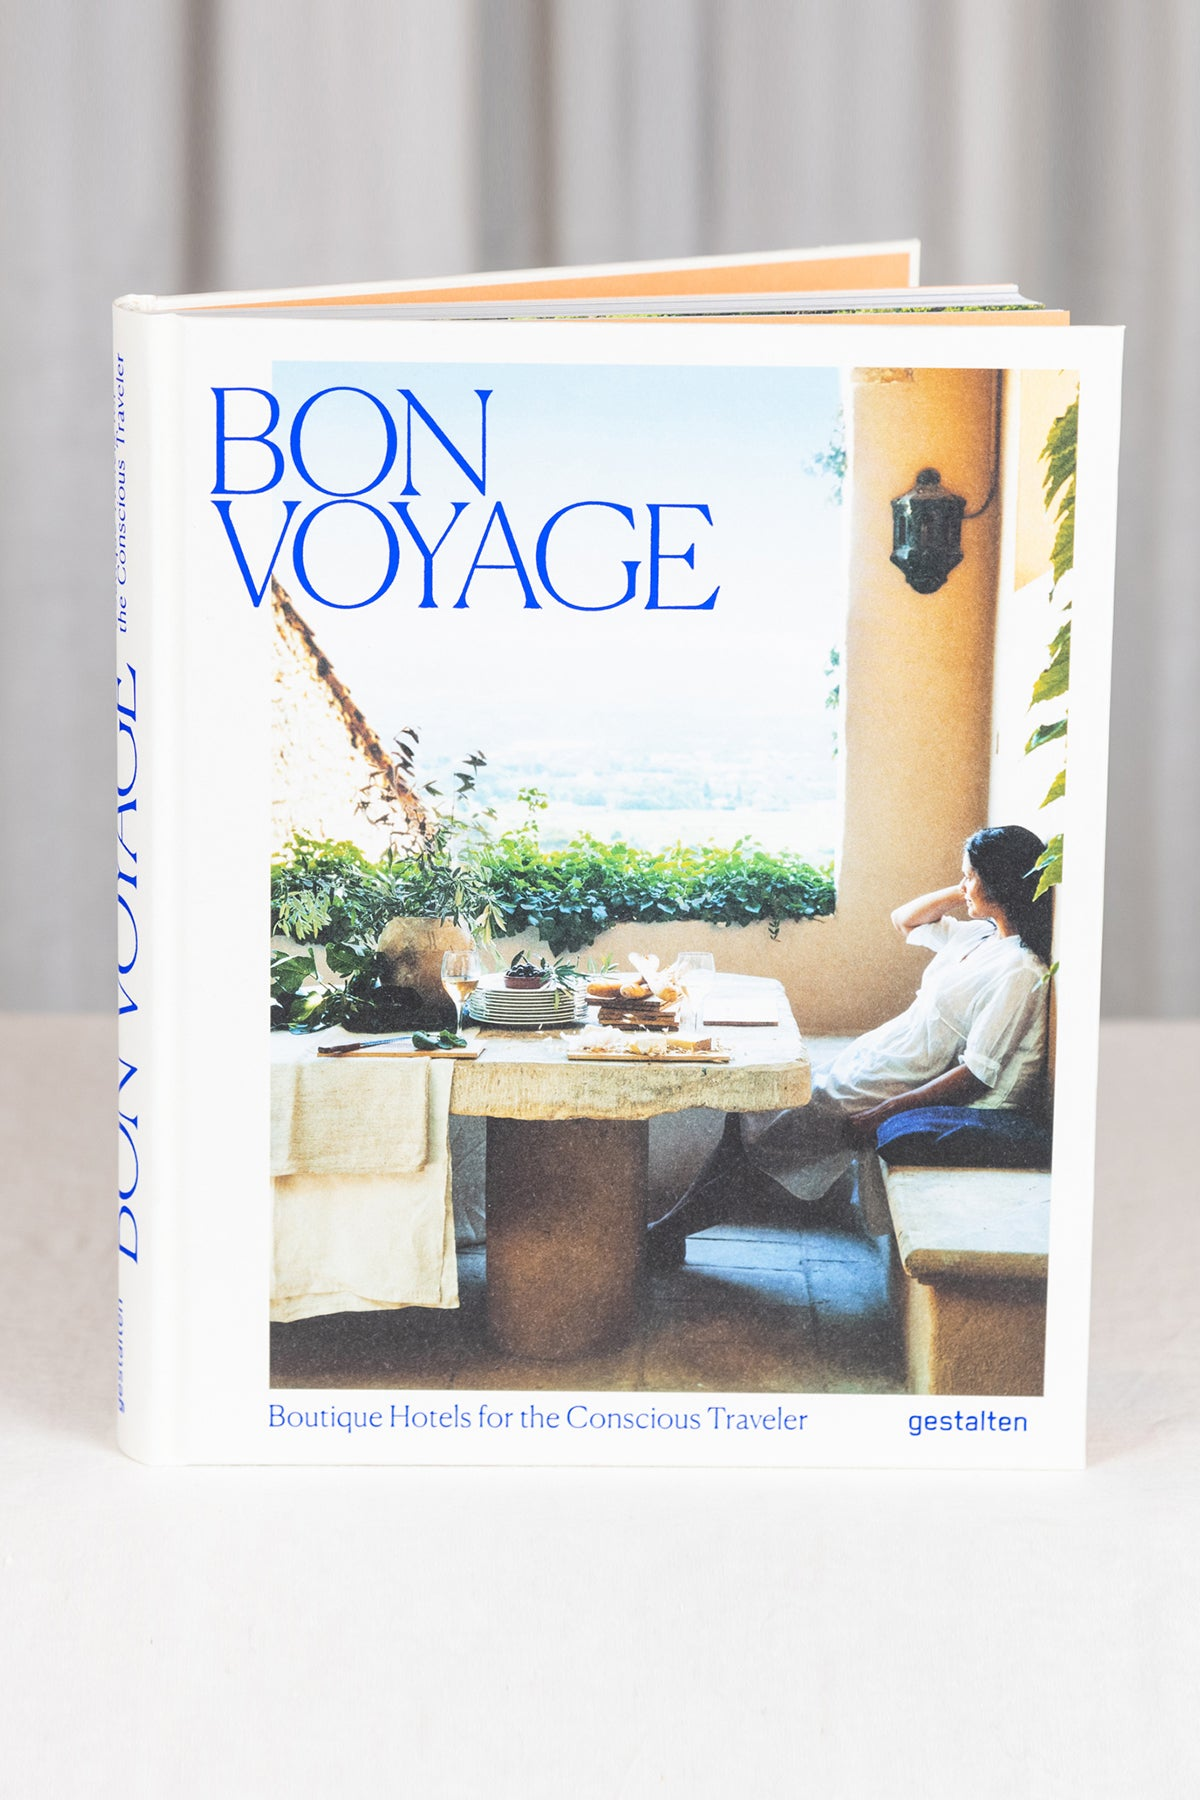 Bon Voyage - Boutique Hotels for the Conscious Traveler